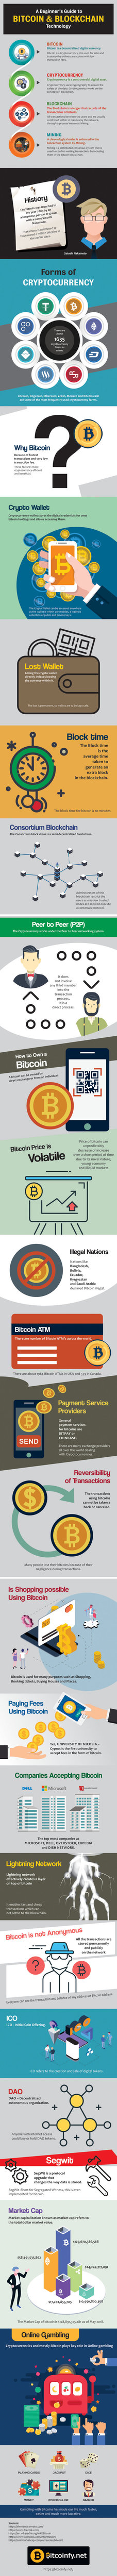 Bitcoin-Infographic_final